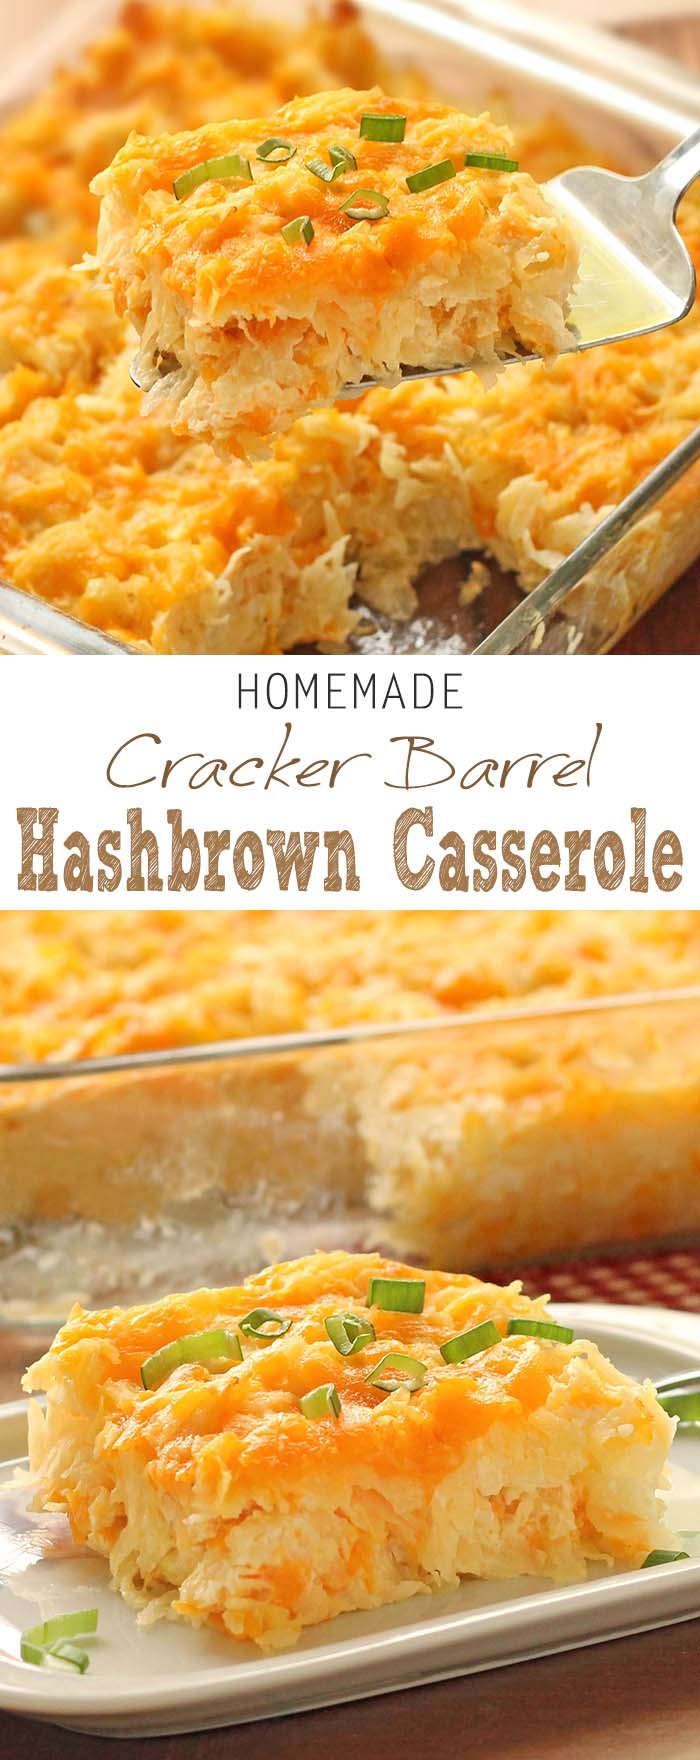 Homemade Cracker Barrel Hashbrown Casserole - Cakescottage